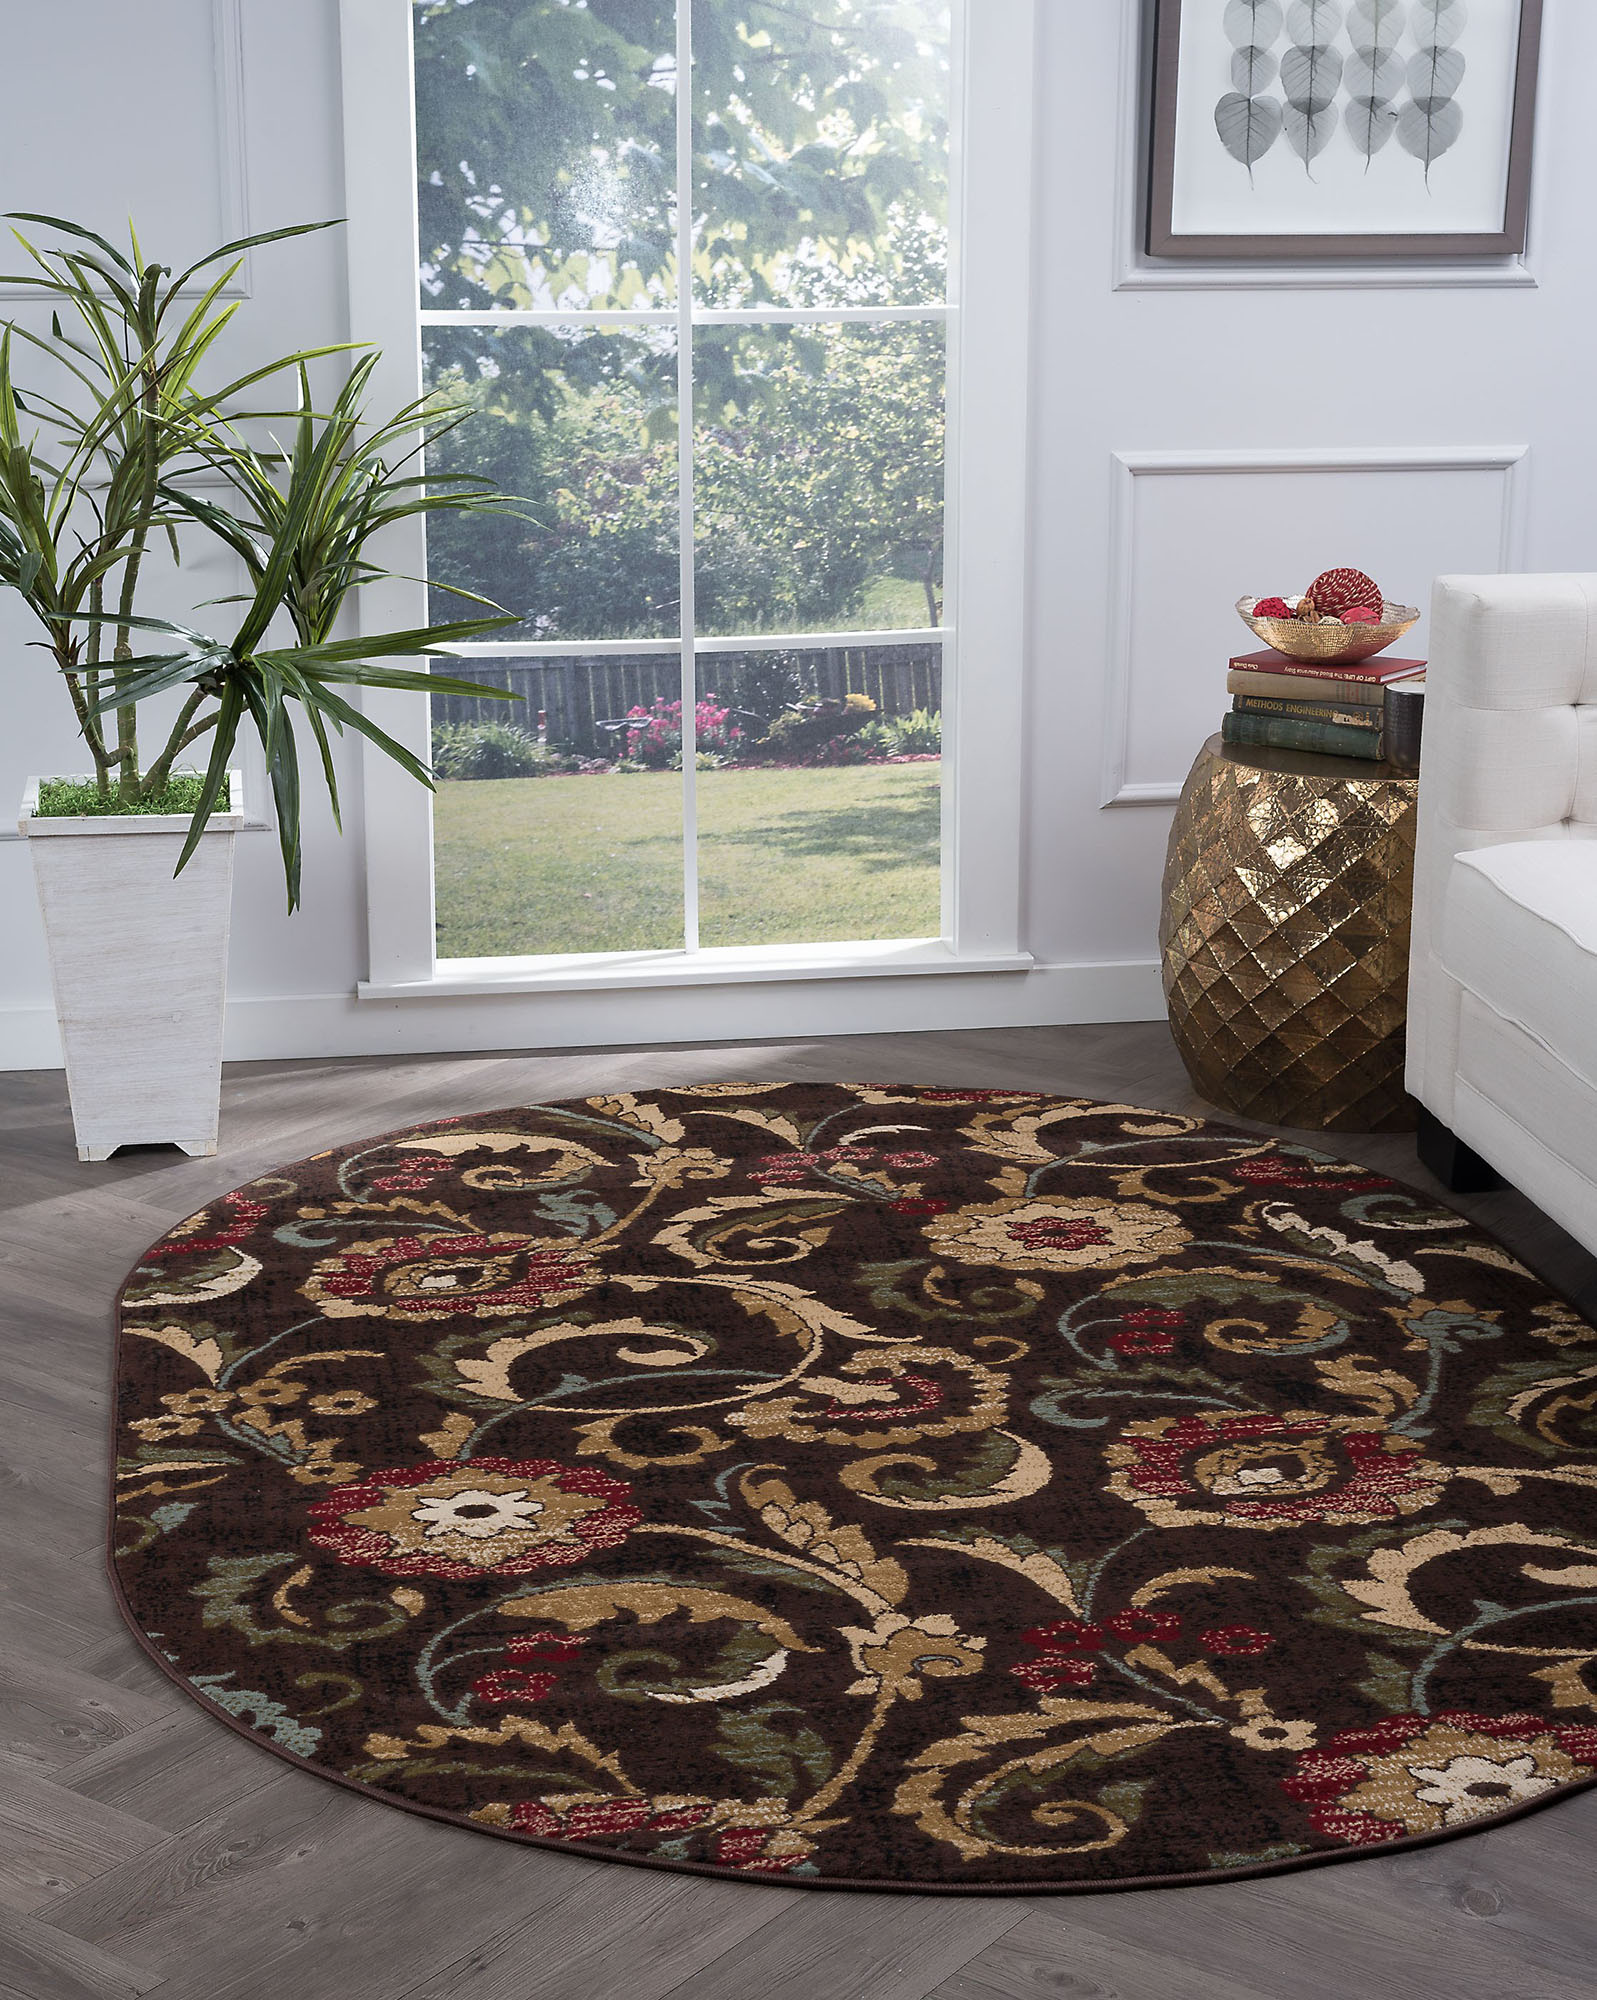 Brown Flowers Scrolls Vines Floral Area Rug Oval 5058 - Aprx